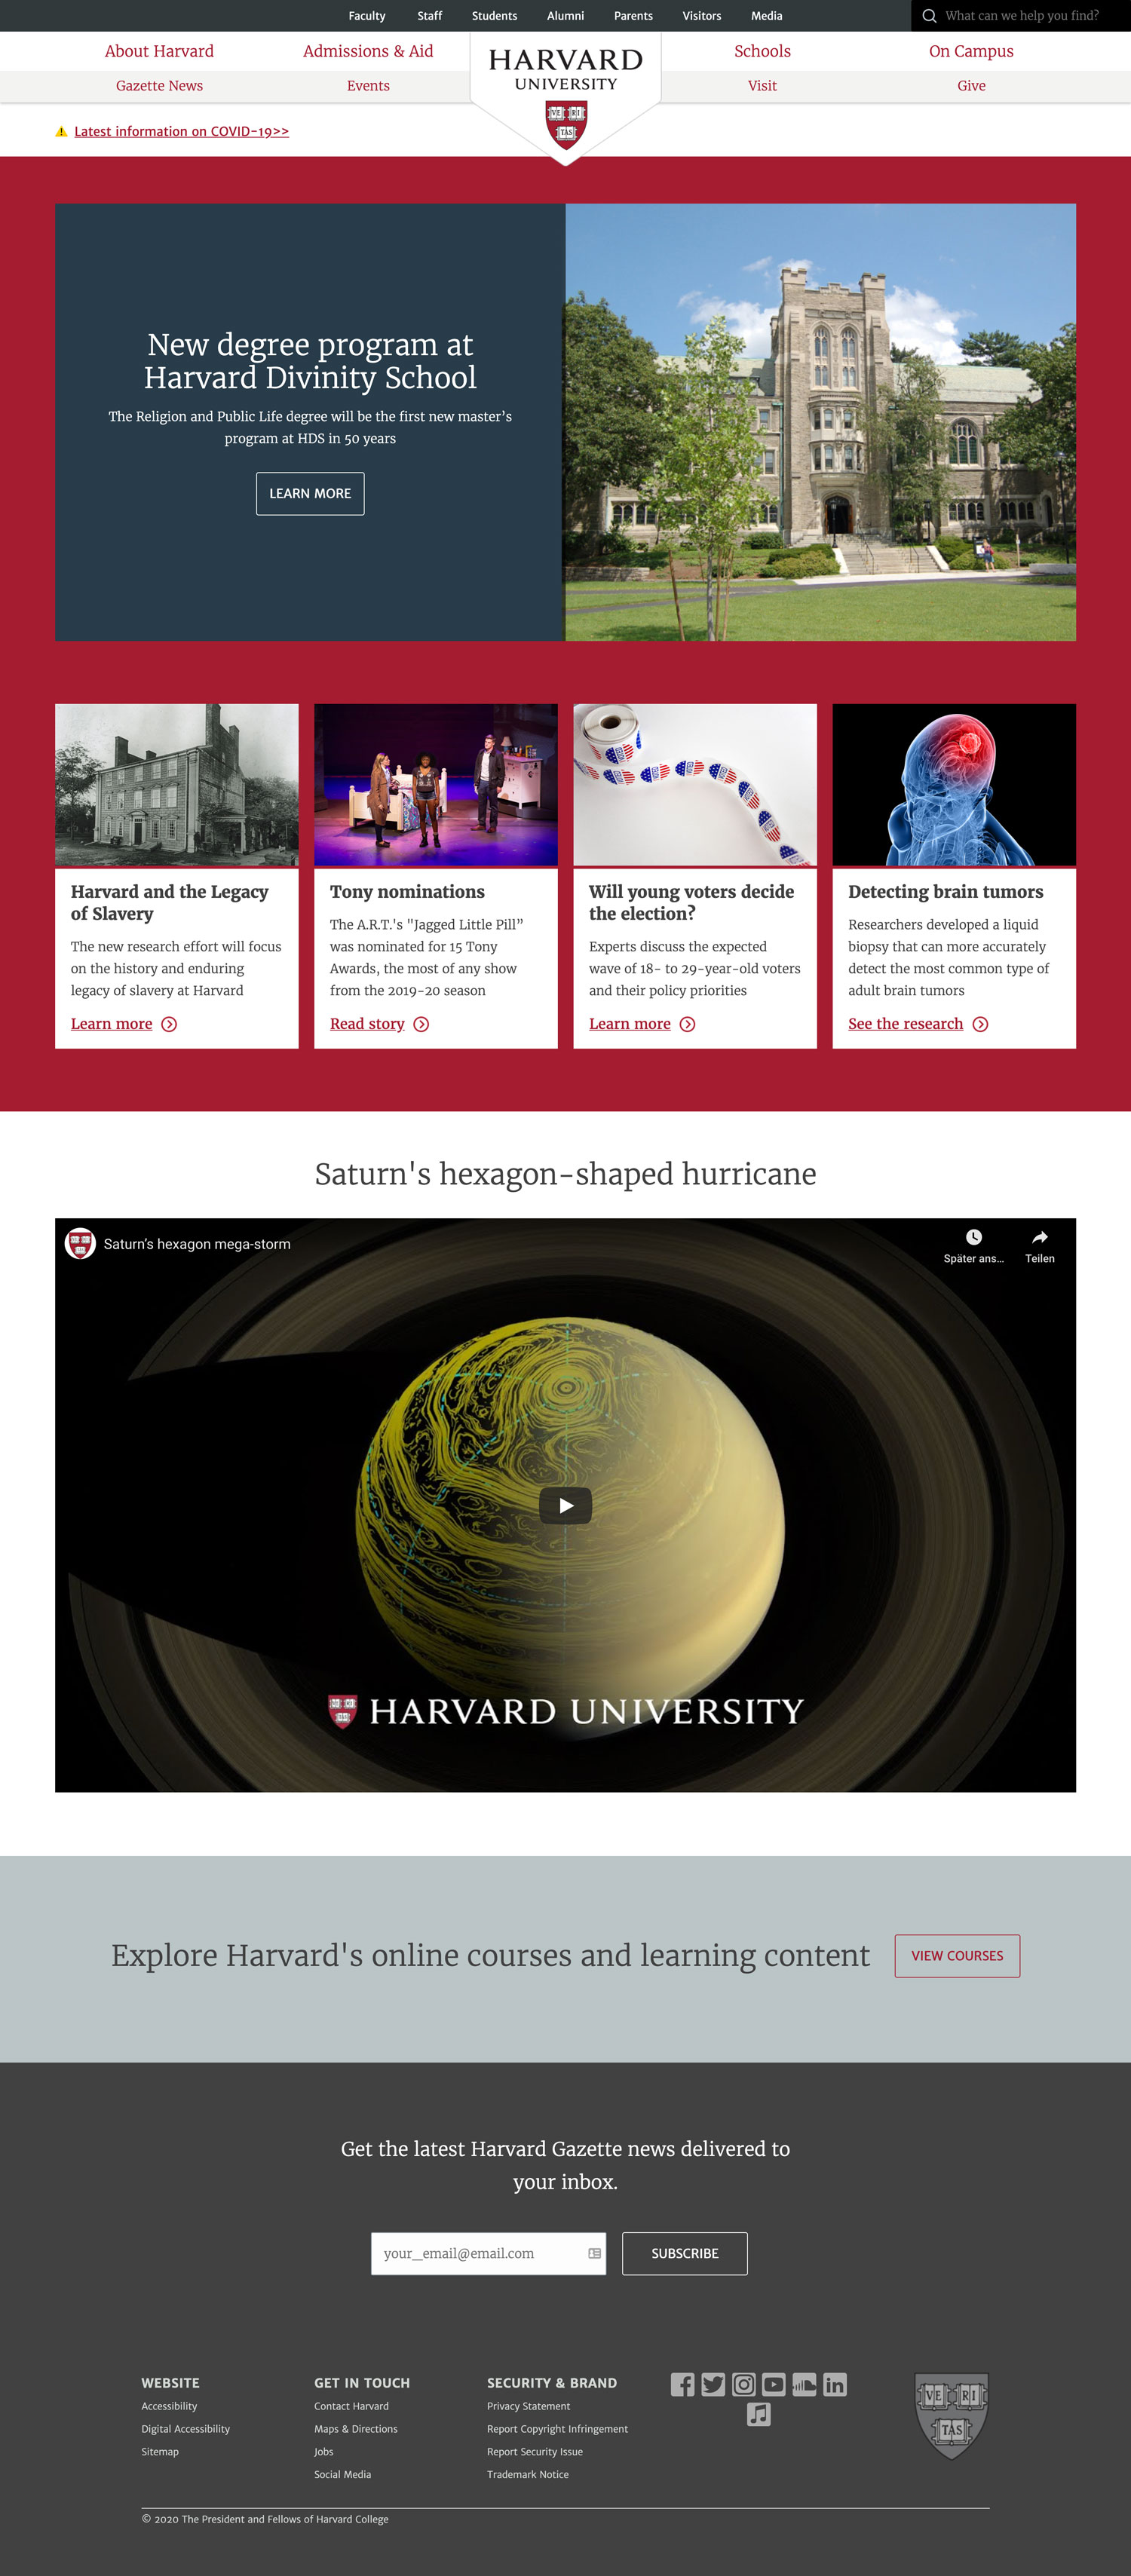 Die Harvard University vertraut auf WordPress